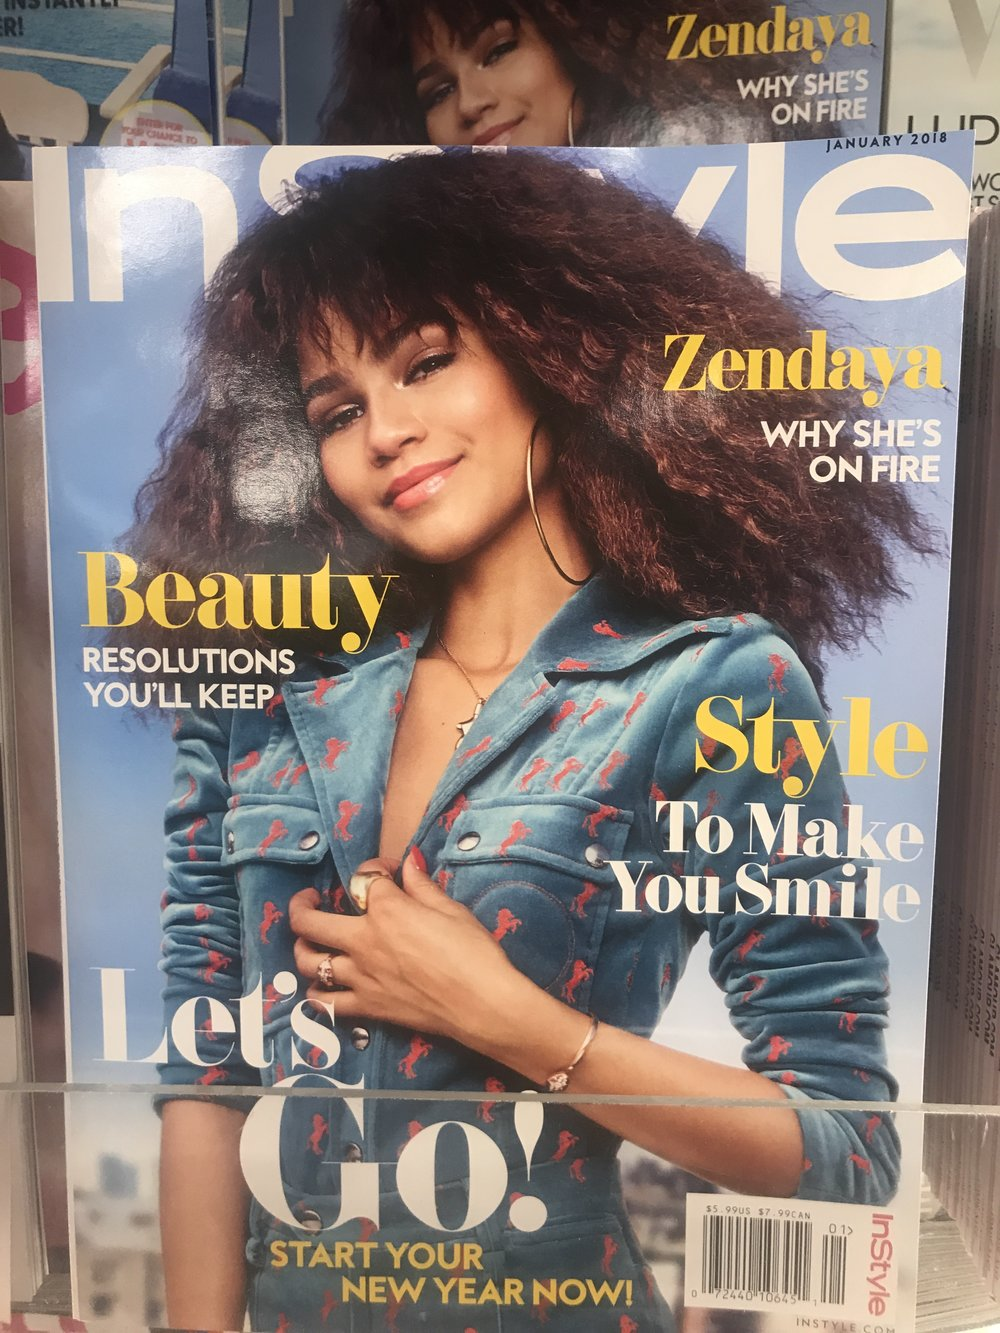 InStyle magazine cover Zendaya - Photo by Nicole Fichera